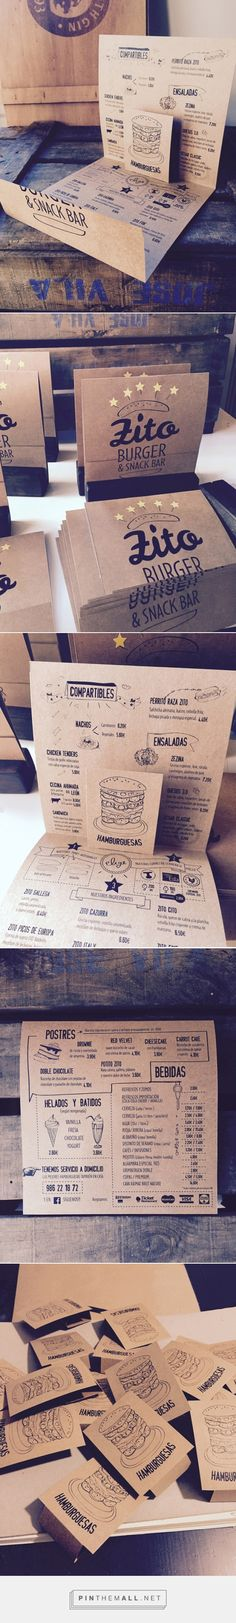 Art of the Menu: Zito Burger. - a grouped images picture - Pin Them All Cafe Design, Food Design, Layout Design, Print Design, Web Design, Carta Restaurant, Restaurant Menu Design, Restaurant Branding, Brand Packaging